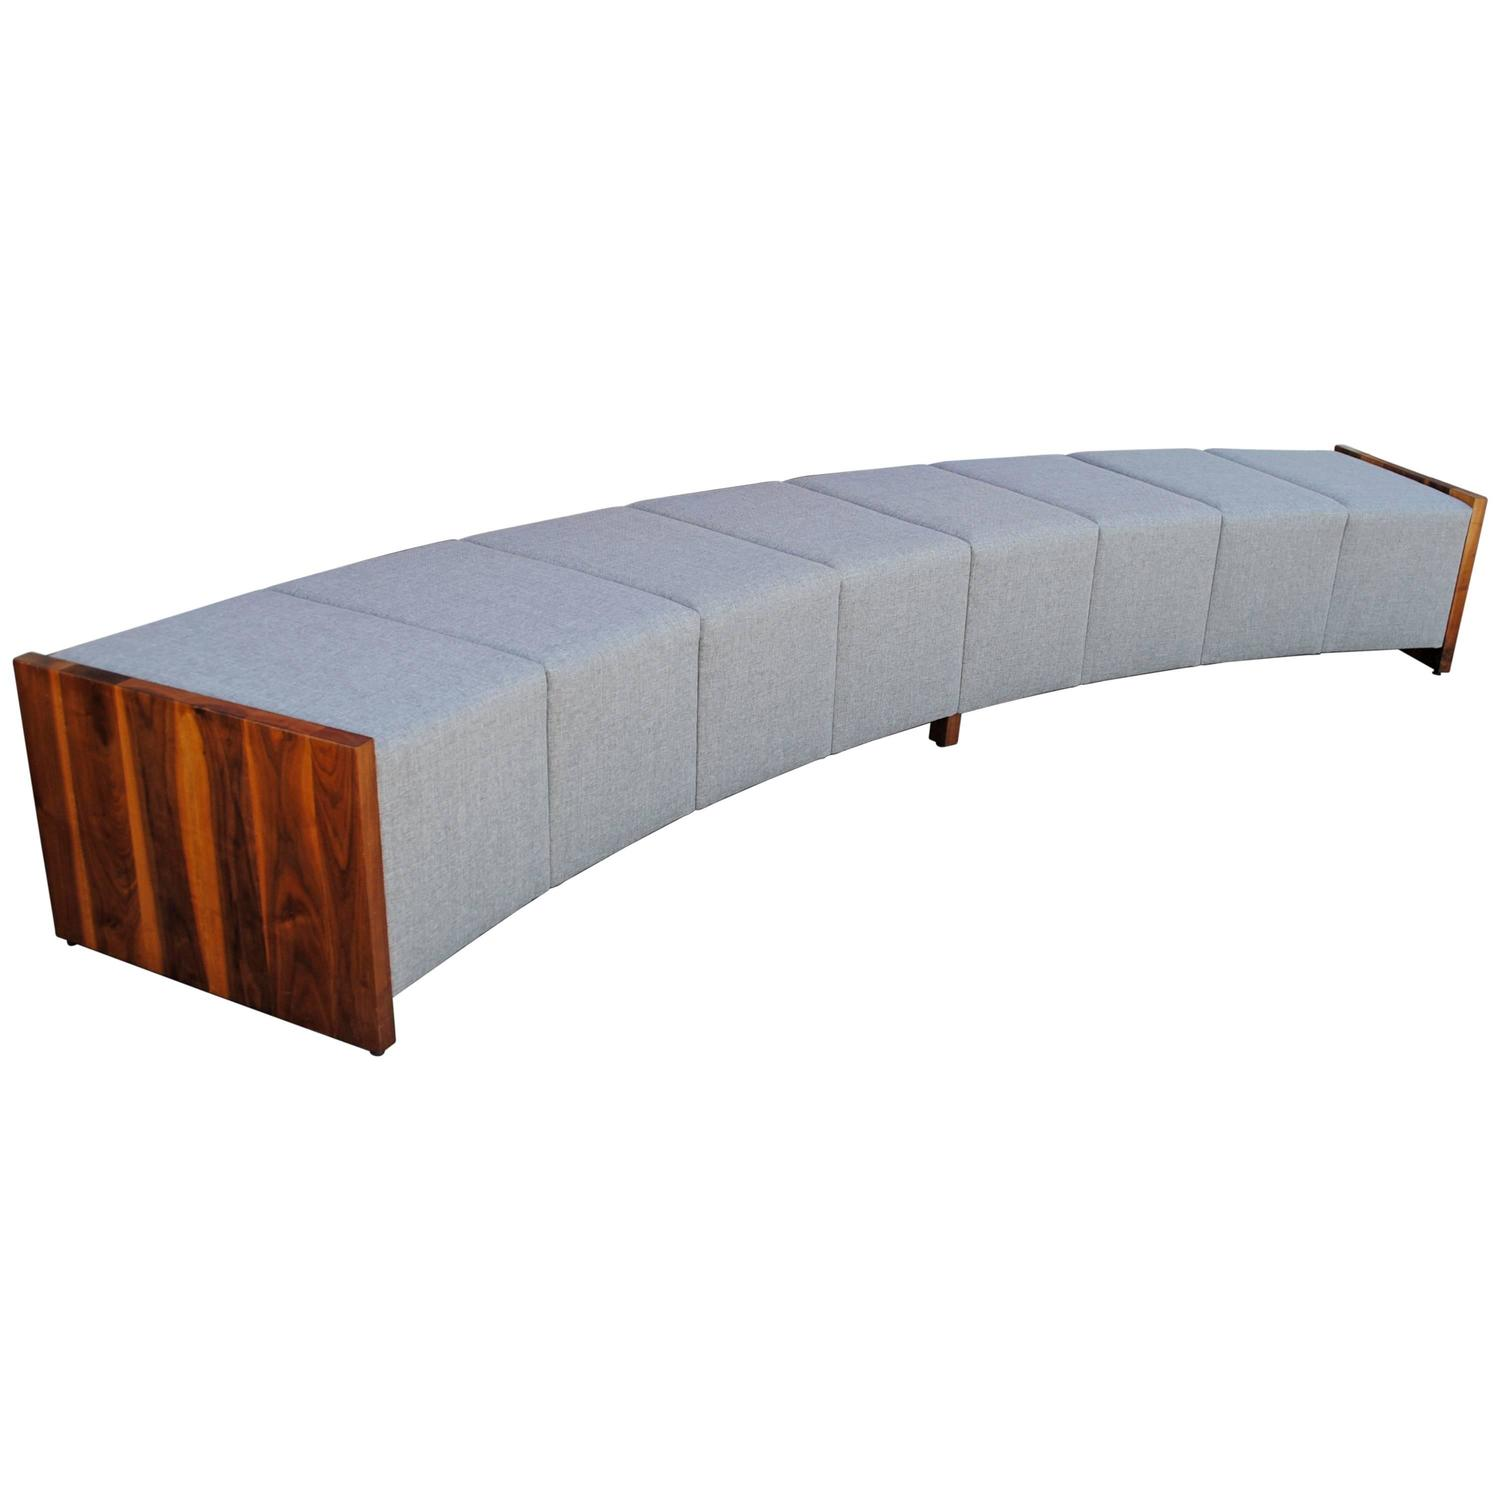 #AE4E0D Large Modern Curved Upholstered And Walnut Bench For Sale At 1stdibs with 1500x1500 px of Best Large Upholstered Bench 15001500 image @ avoidforclosure.info